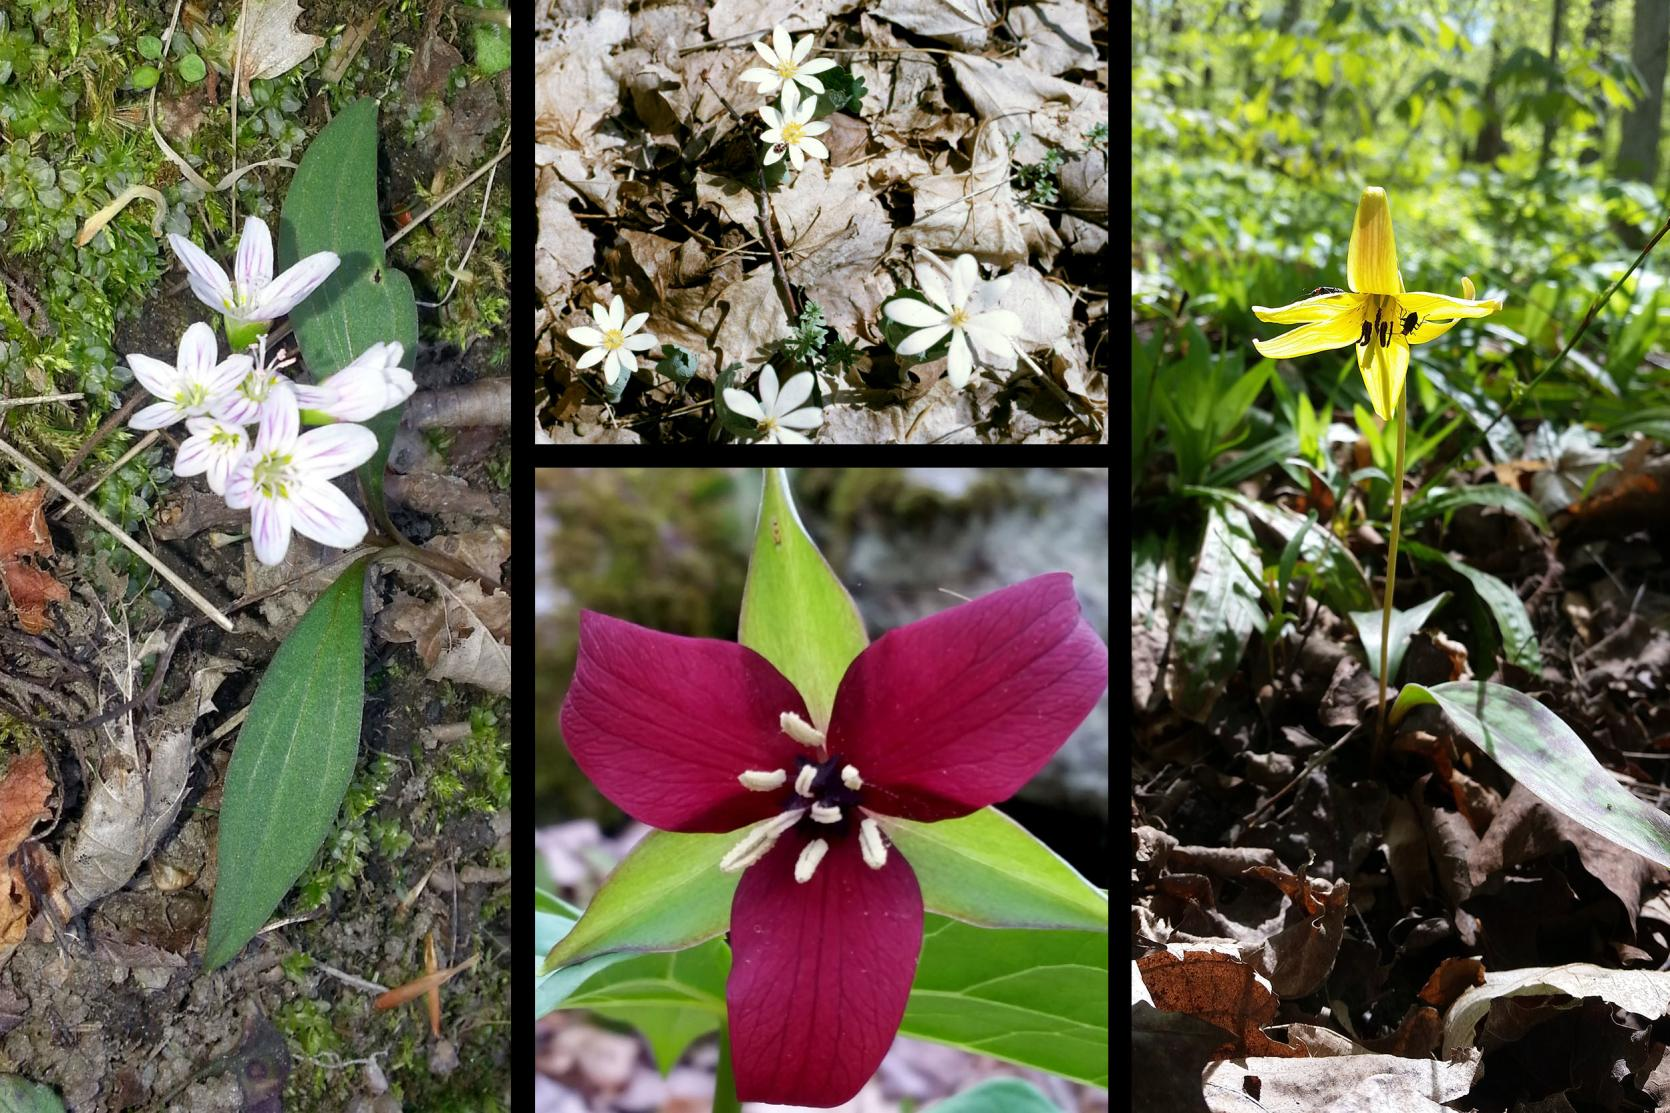 Clockwise from left: Spring beauty (Claytonia virginiana), blood root (Sanguinaria canadensis), trout lily (Erythronium americanum), wake robin (Trillium erectum).